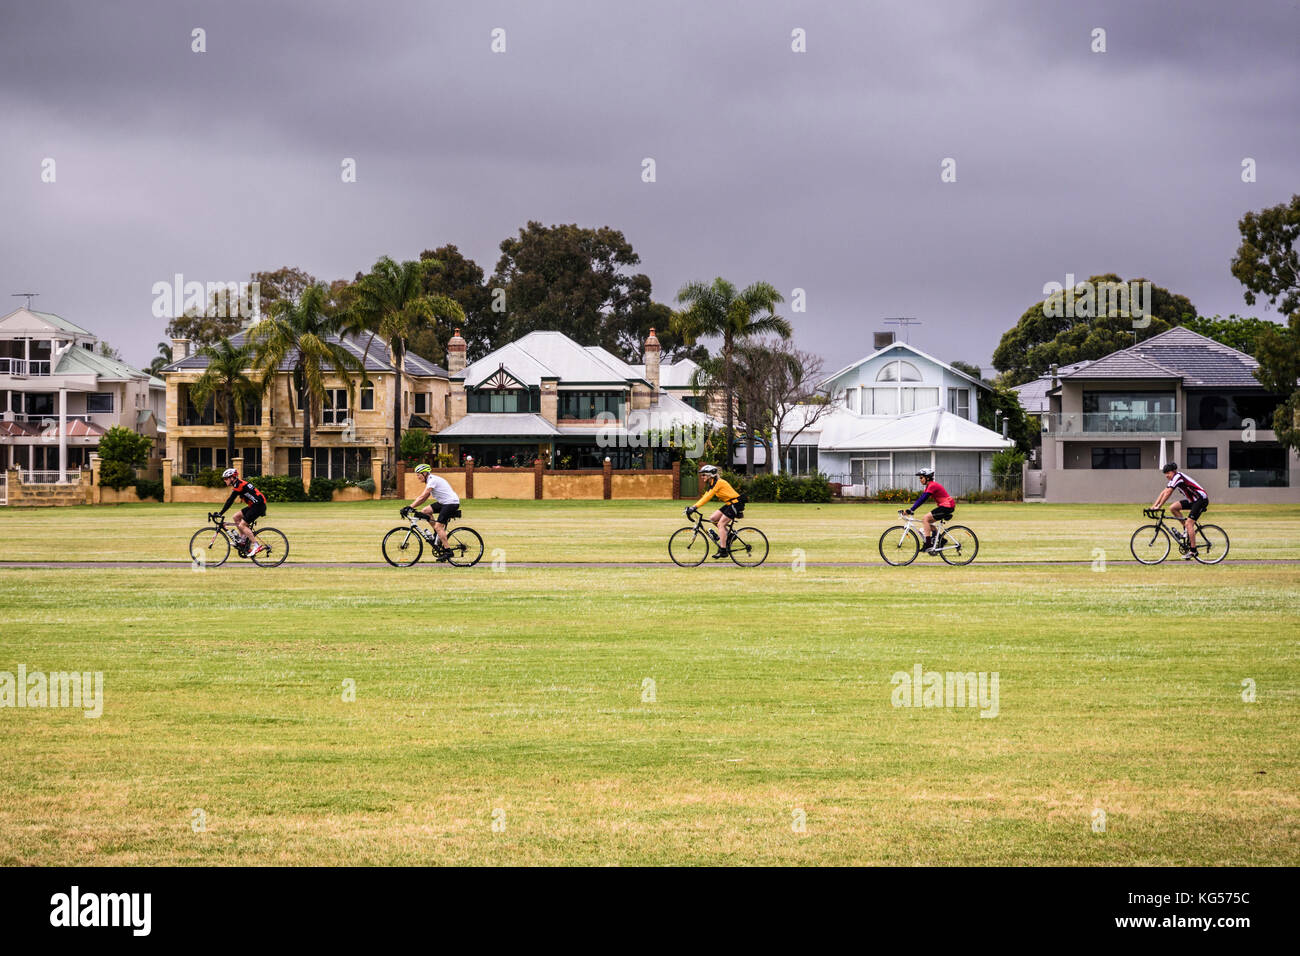 Cyclists braving bad weather along the cyclepath on the South Perth foreshore, Western Australia - Stock Image